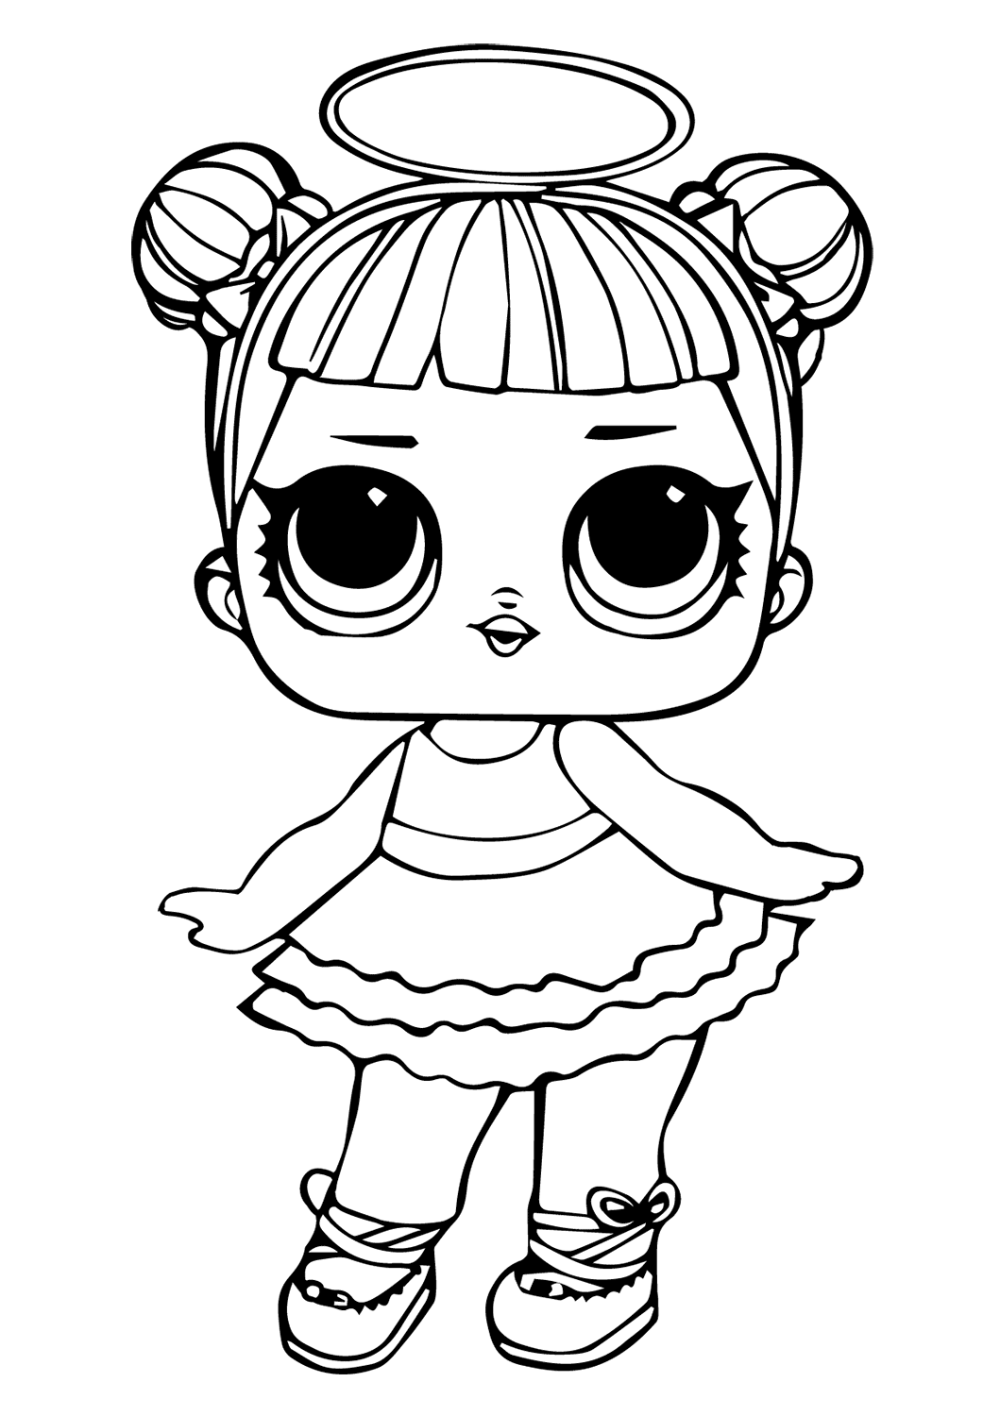 Lol Coloring Pages For Kids Super Coloring Pages Princess Coloring Pages Lol Dolls